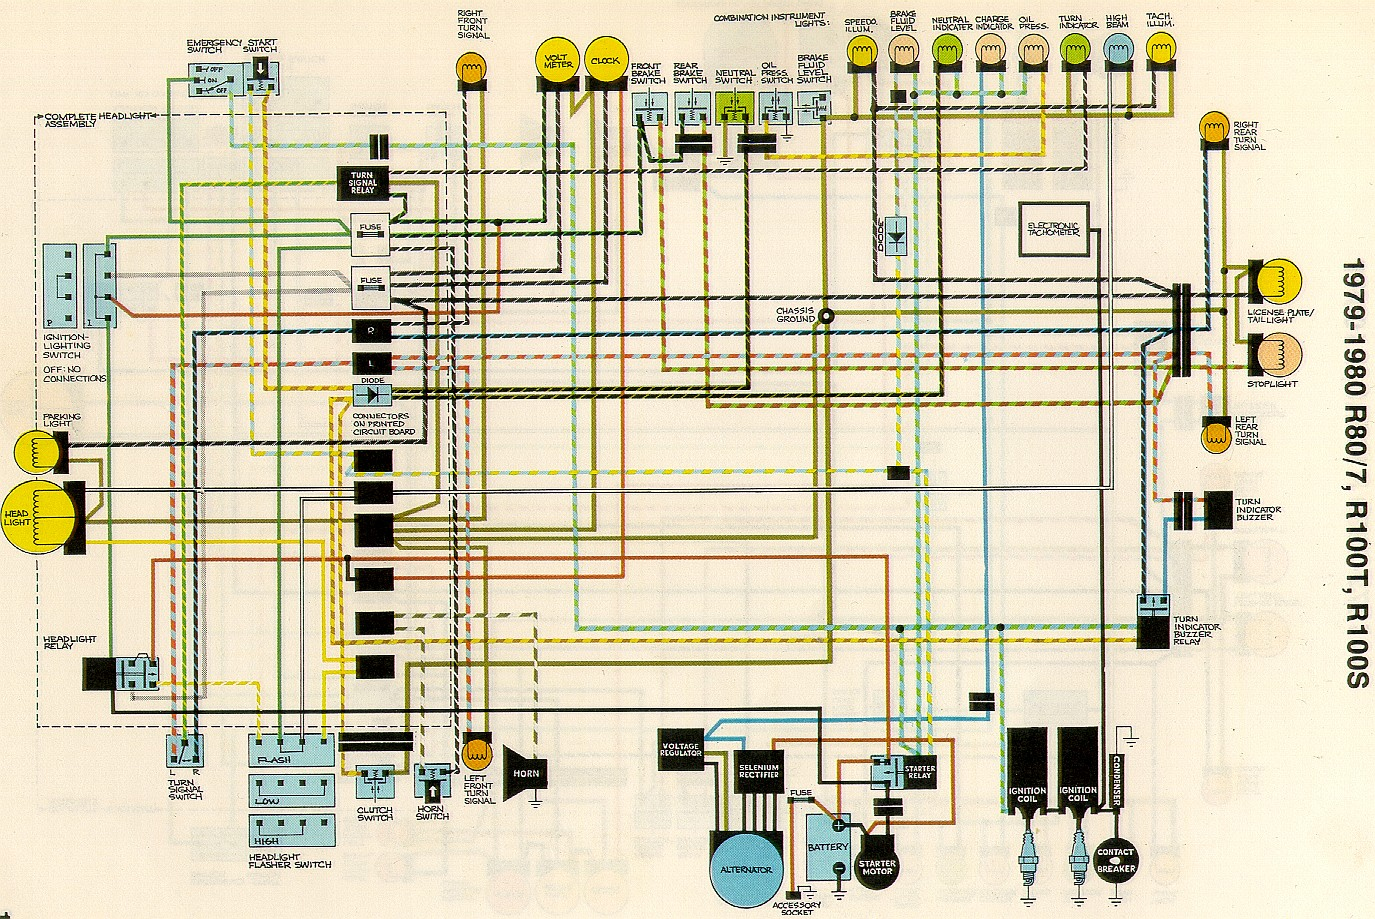 79 5 united articles wiring diagrams bmw r100rs gauge wiring diagram at pacquiaovsvargaslive.co